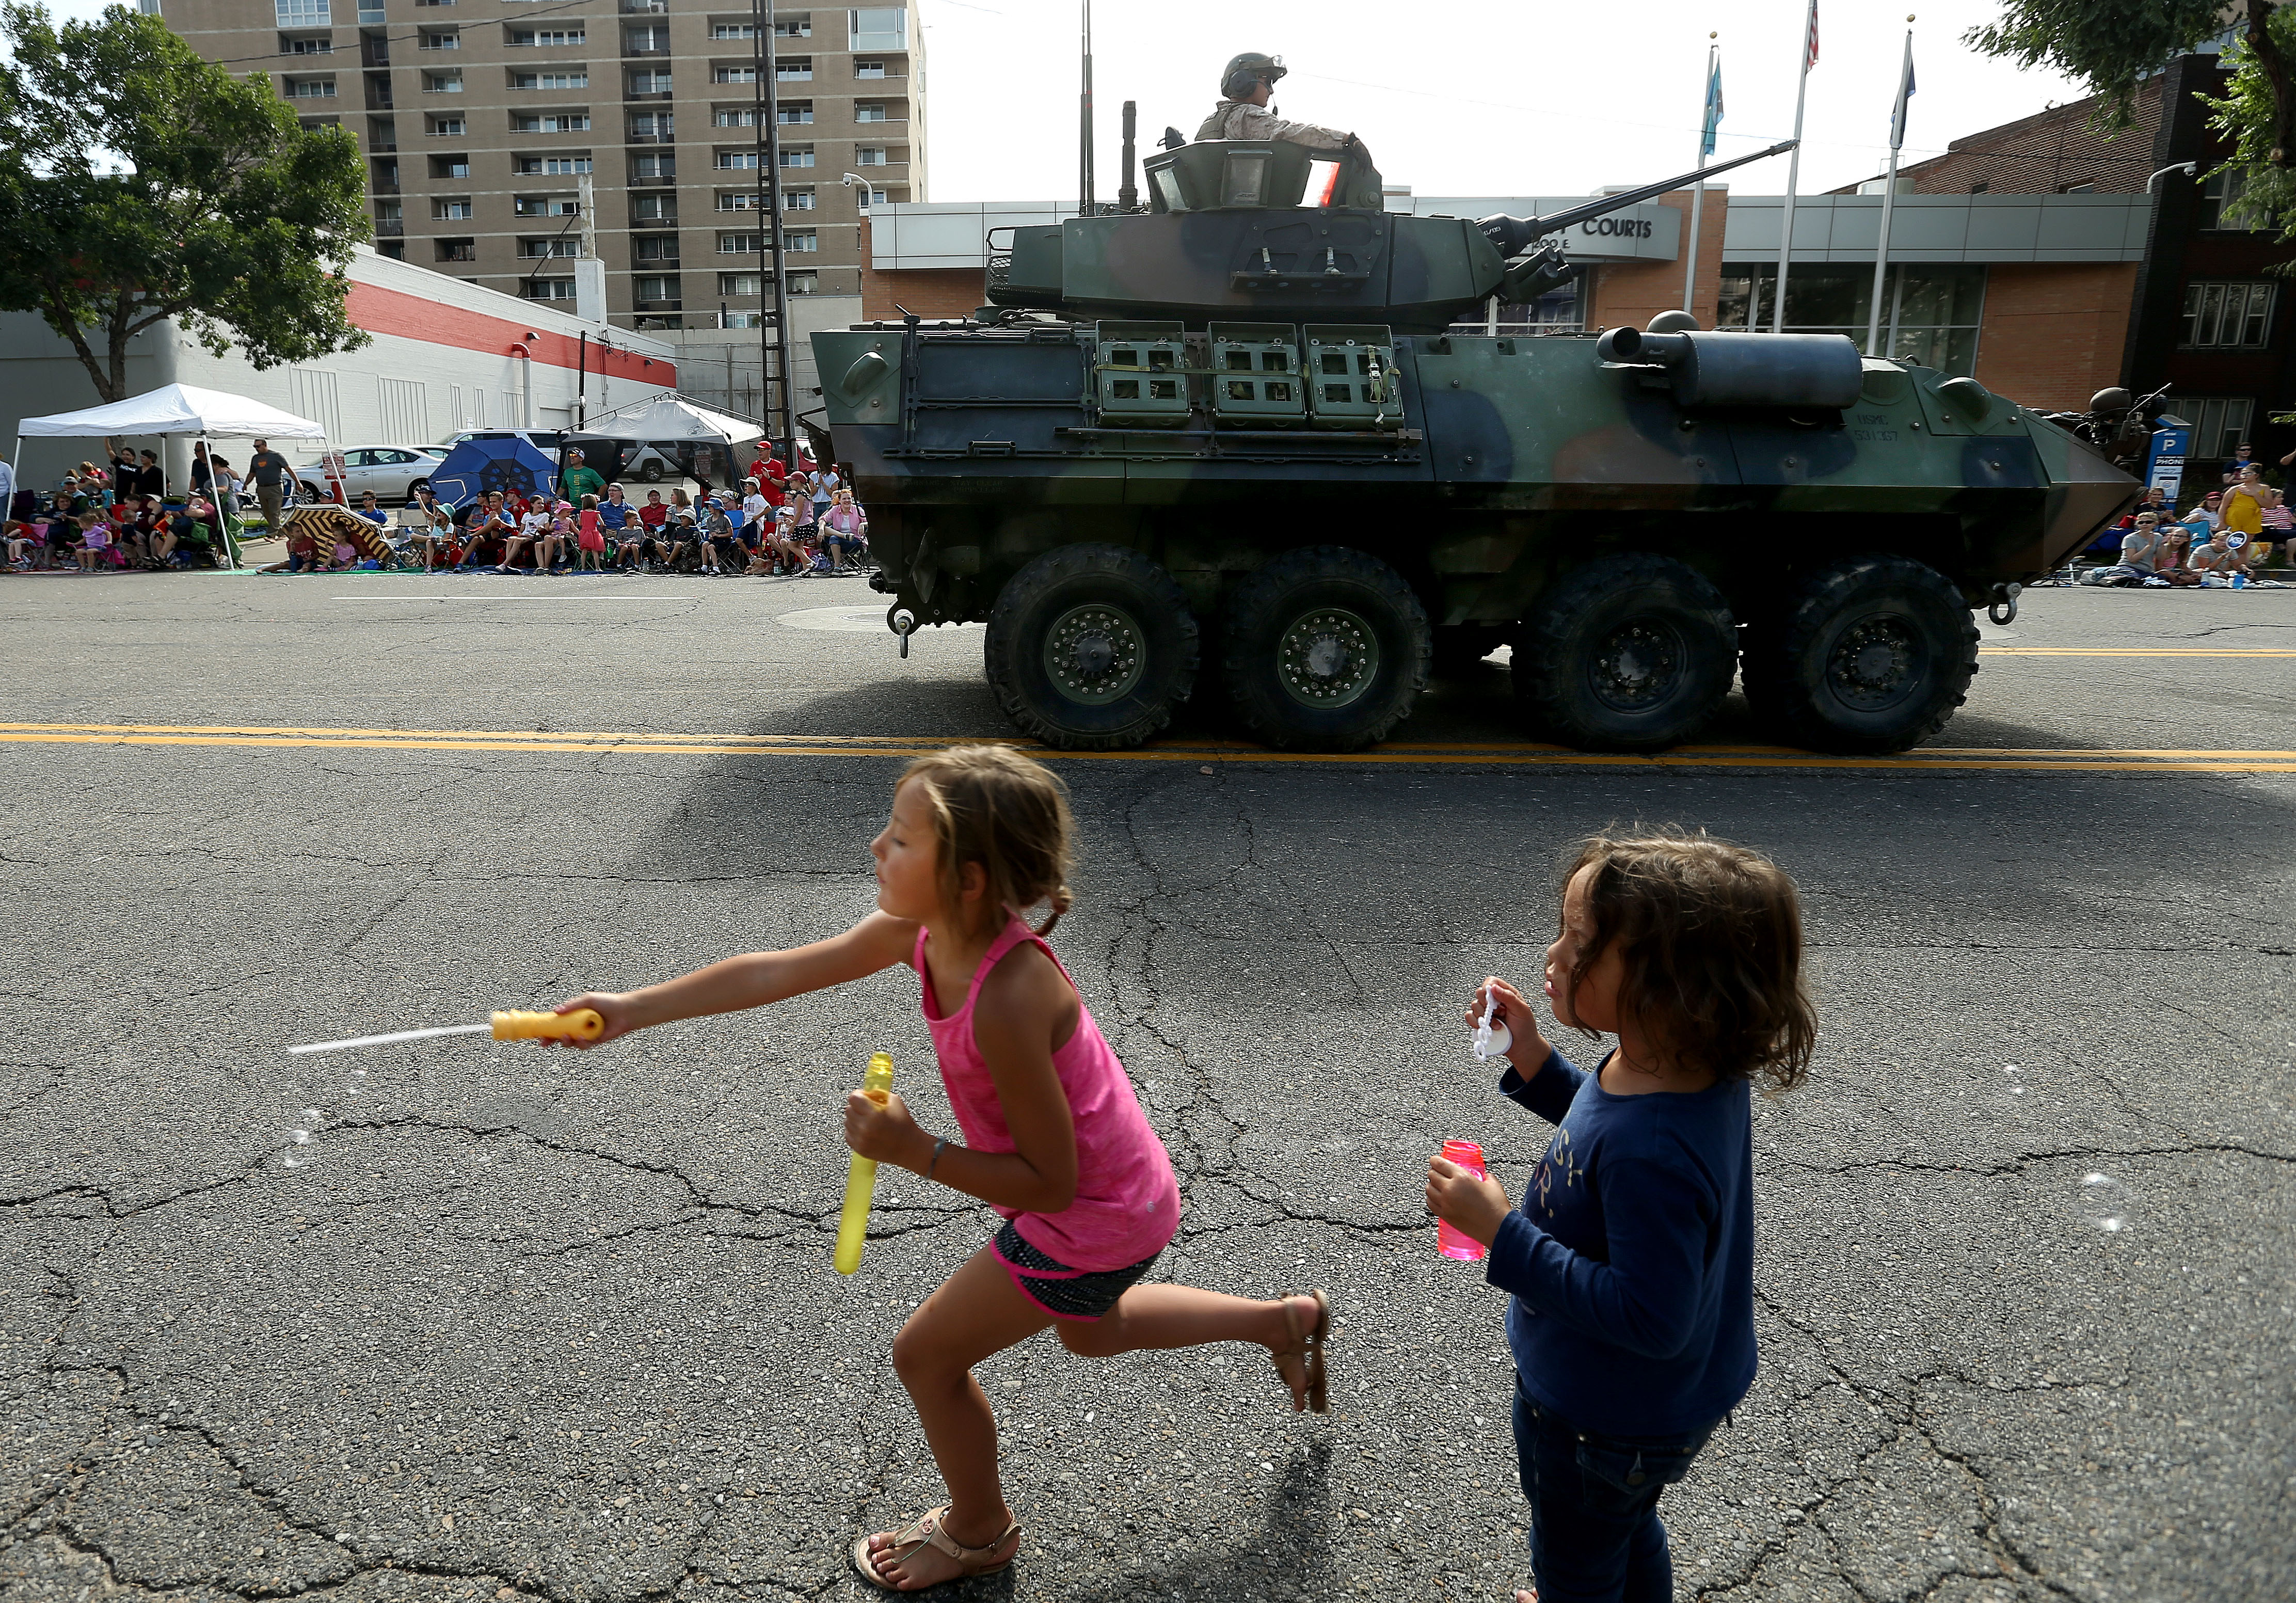 Children play with bubbles a the Marines pass by during the Days of '47 Parade in Salt Lake City on Wednesday, July 24, 2019.